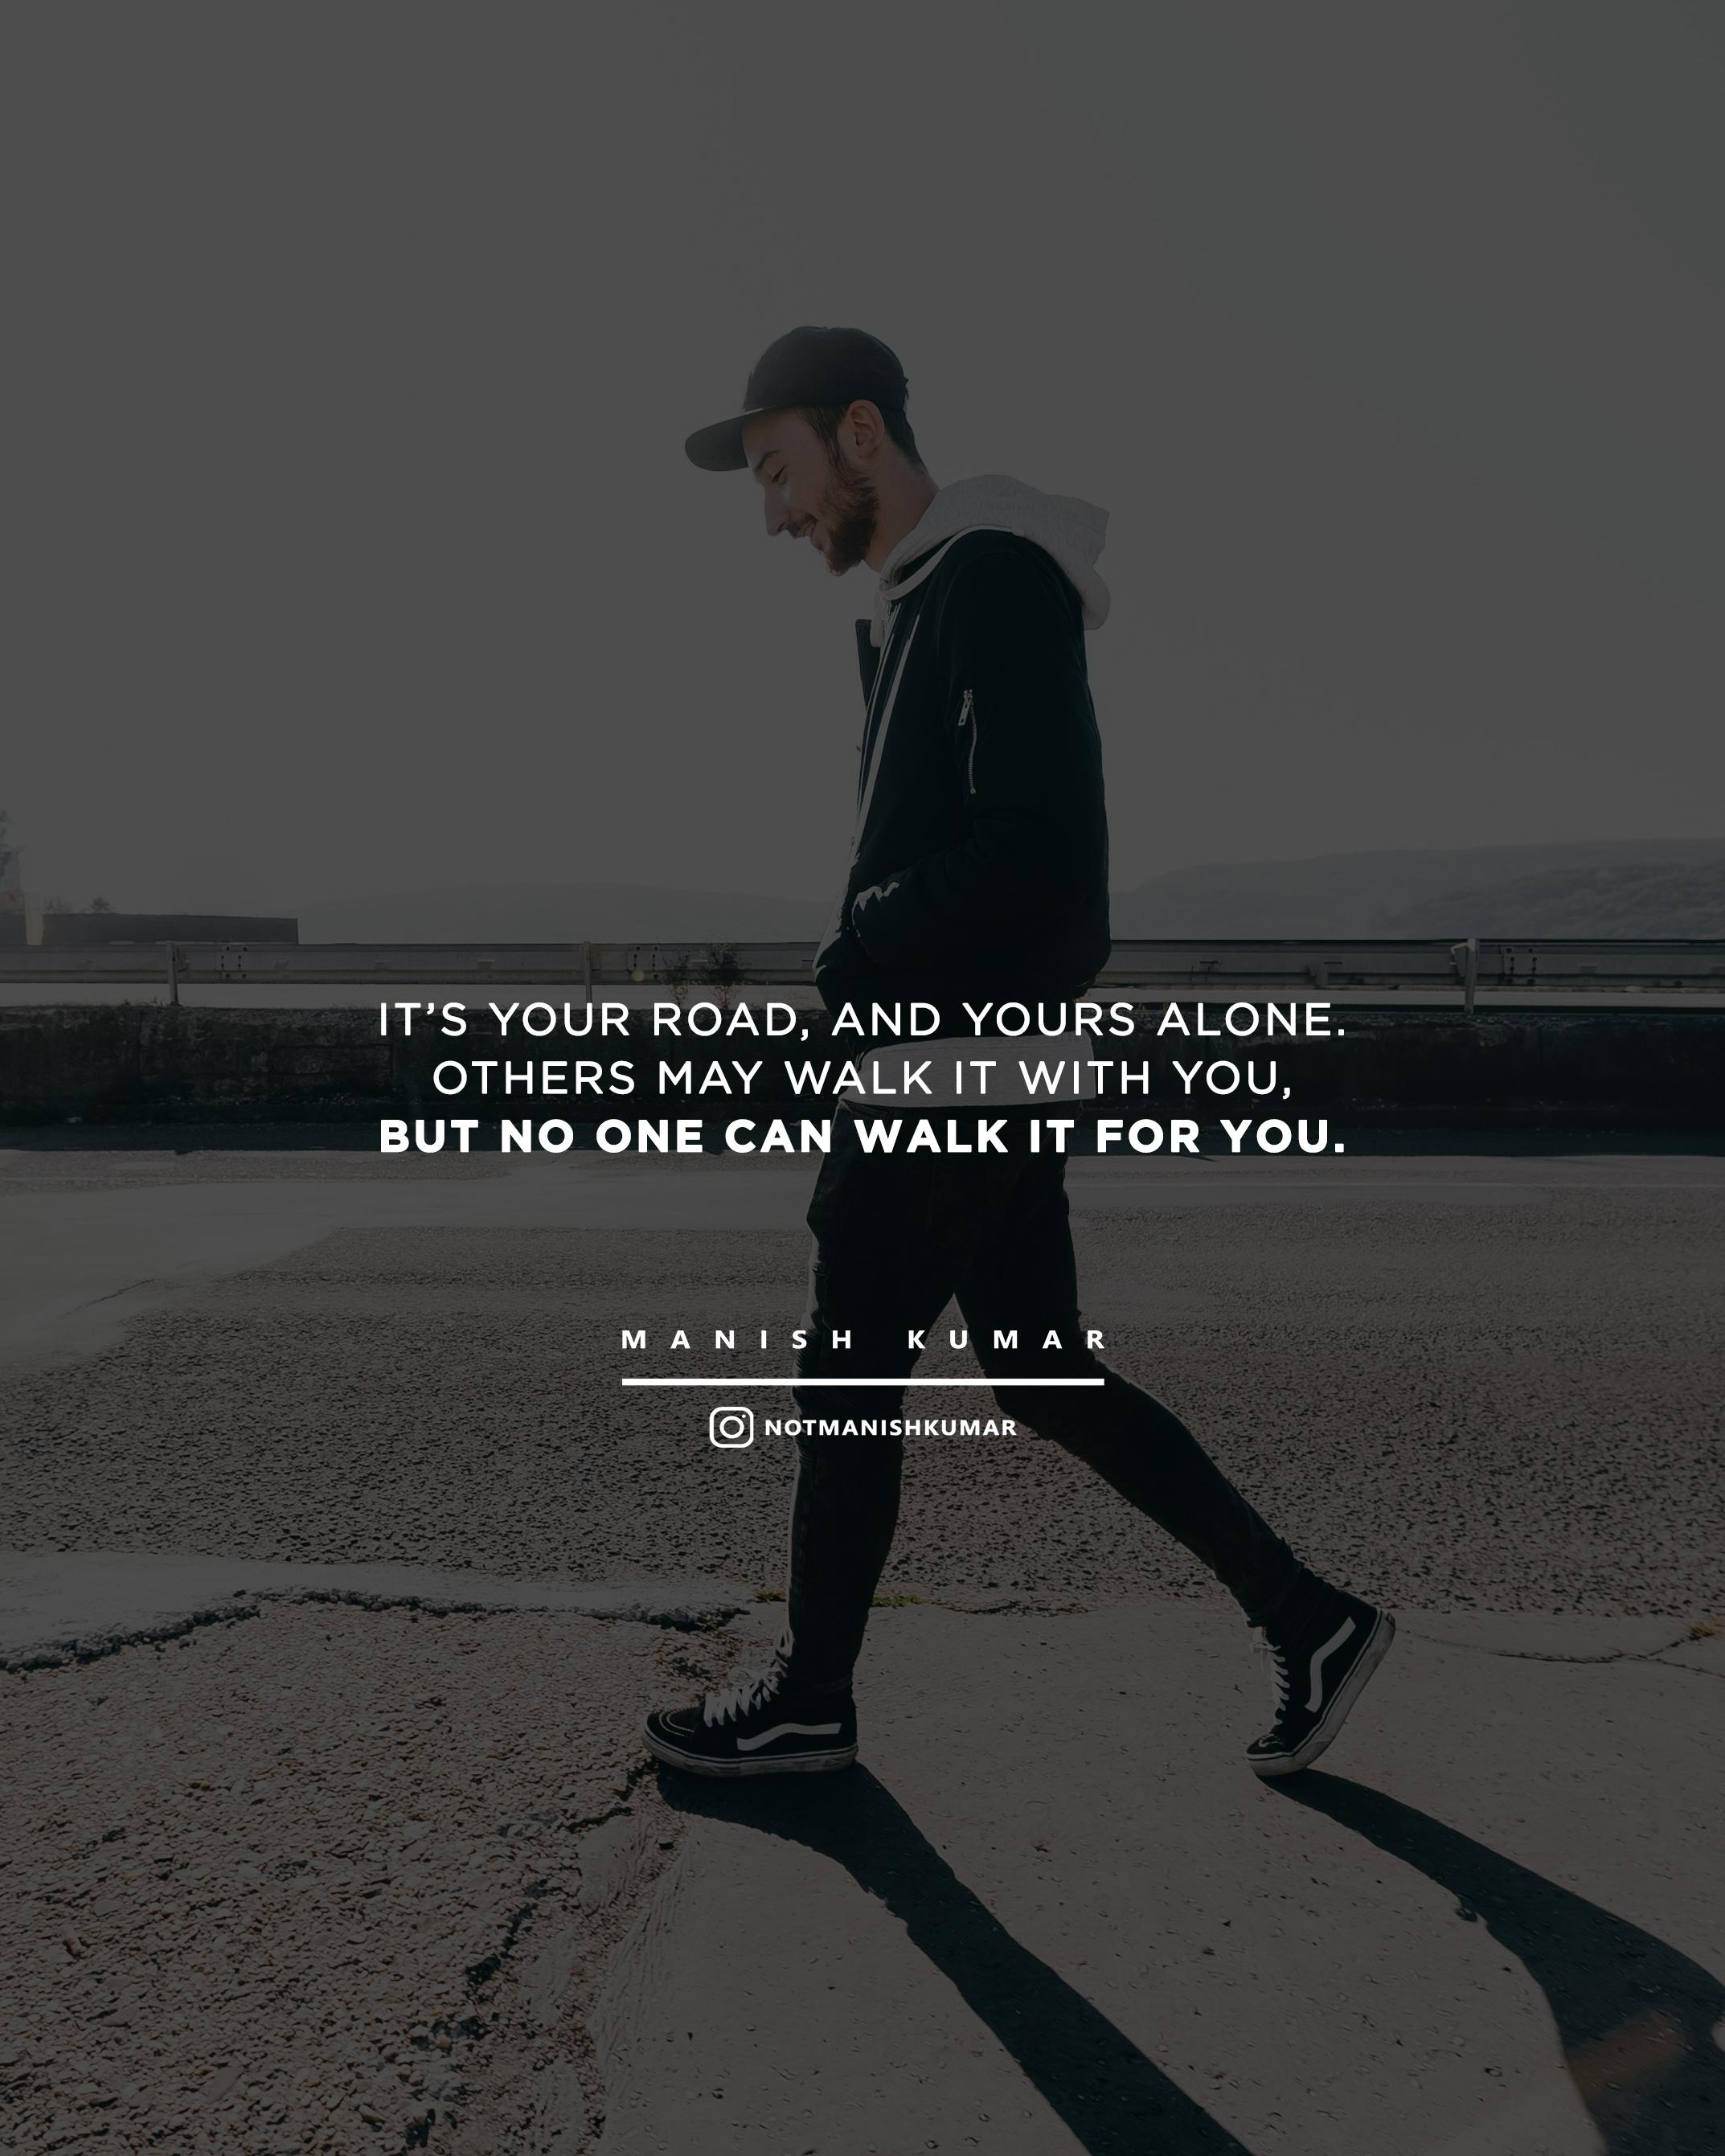 [Image] Learn to walk alone